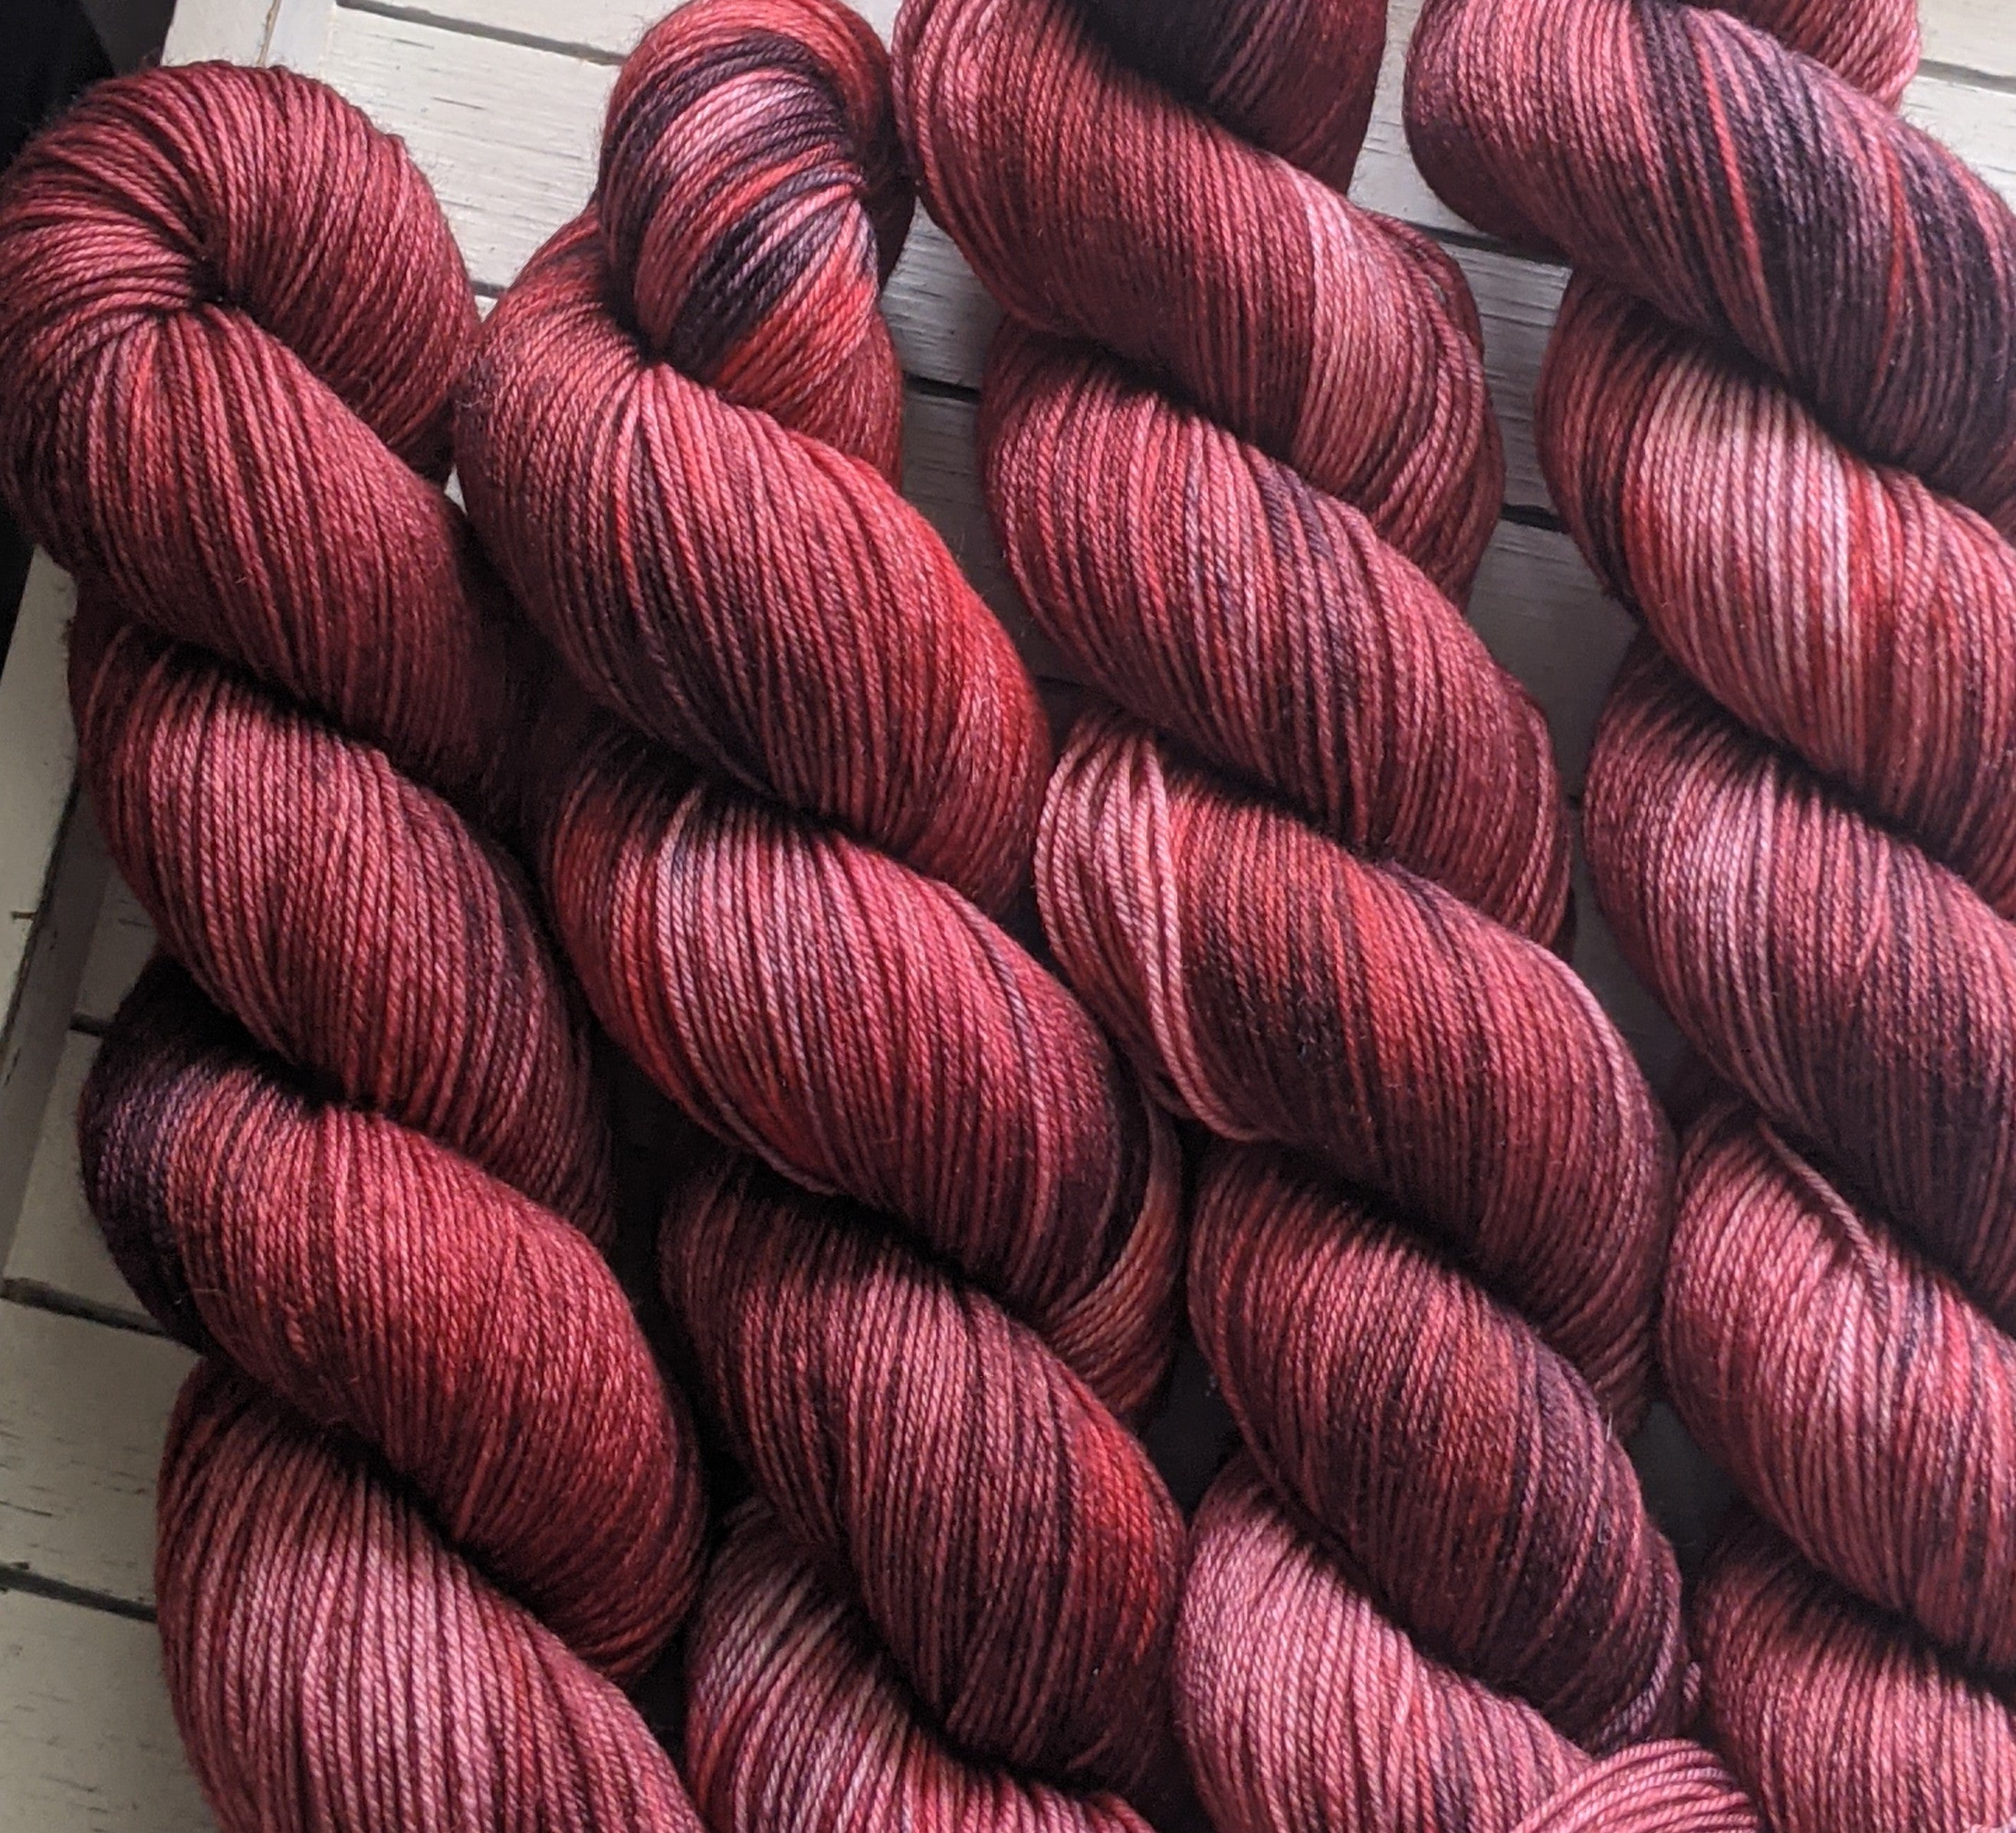 Tainted Love - Birch Hollow Fibers